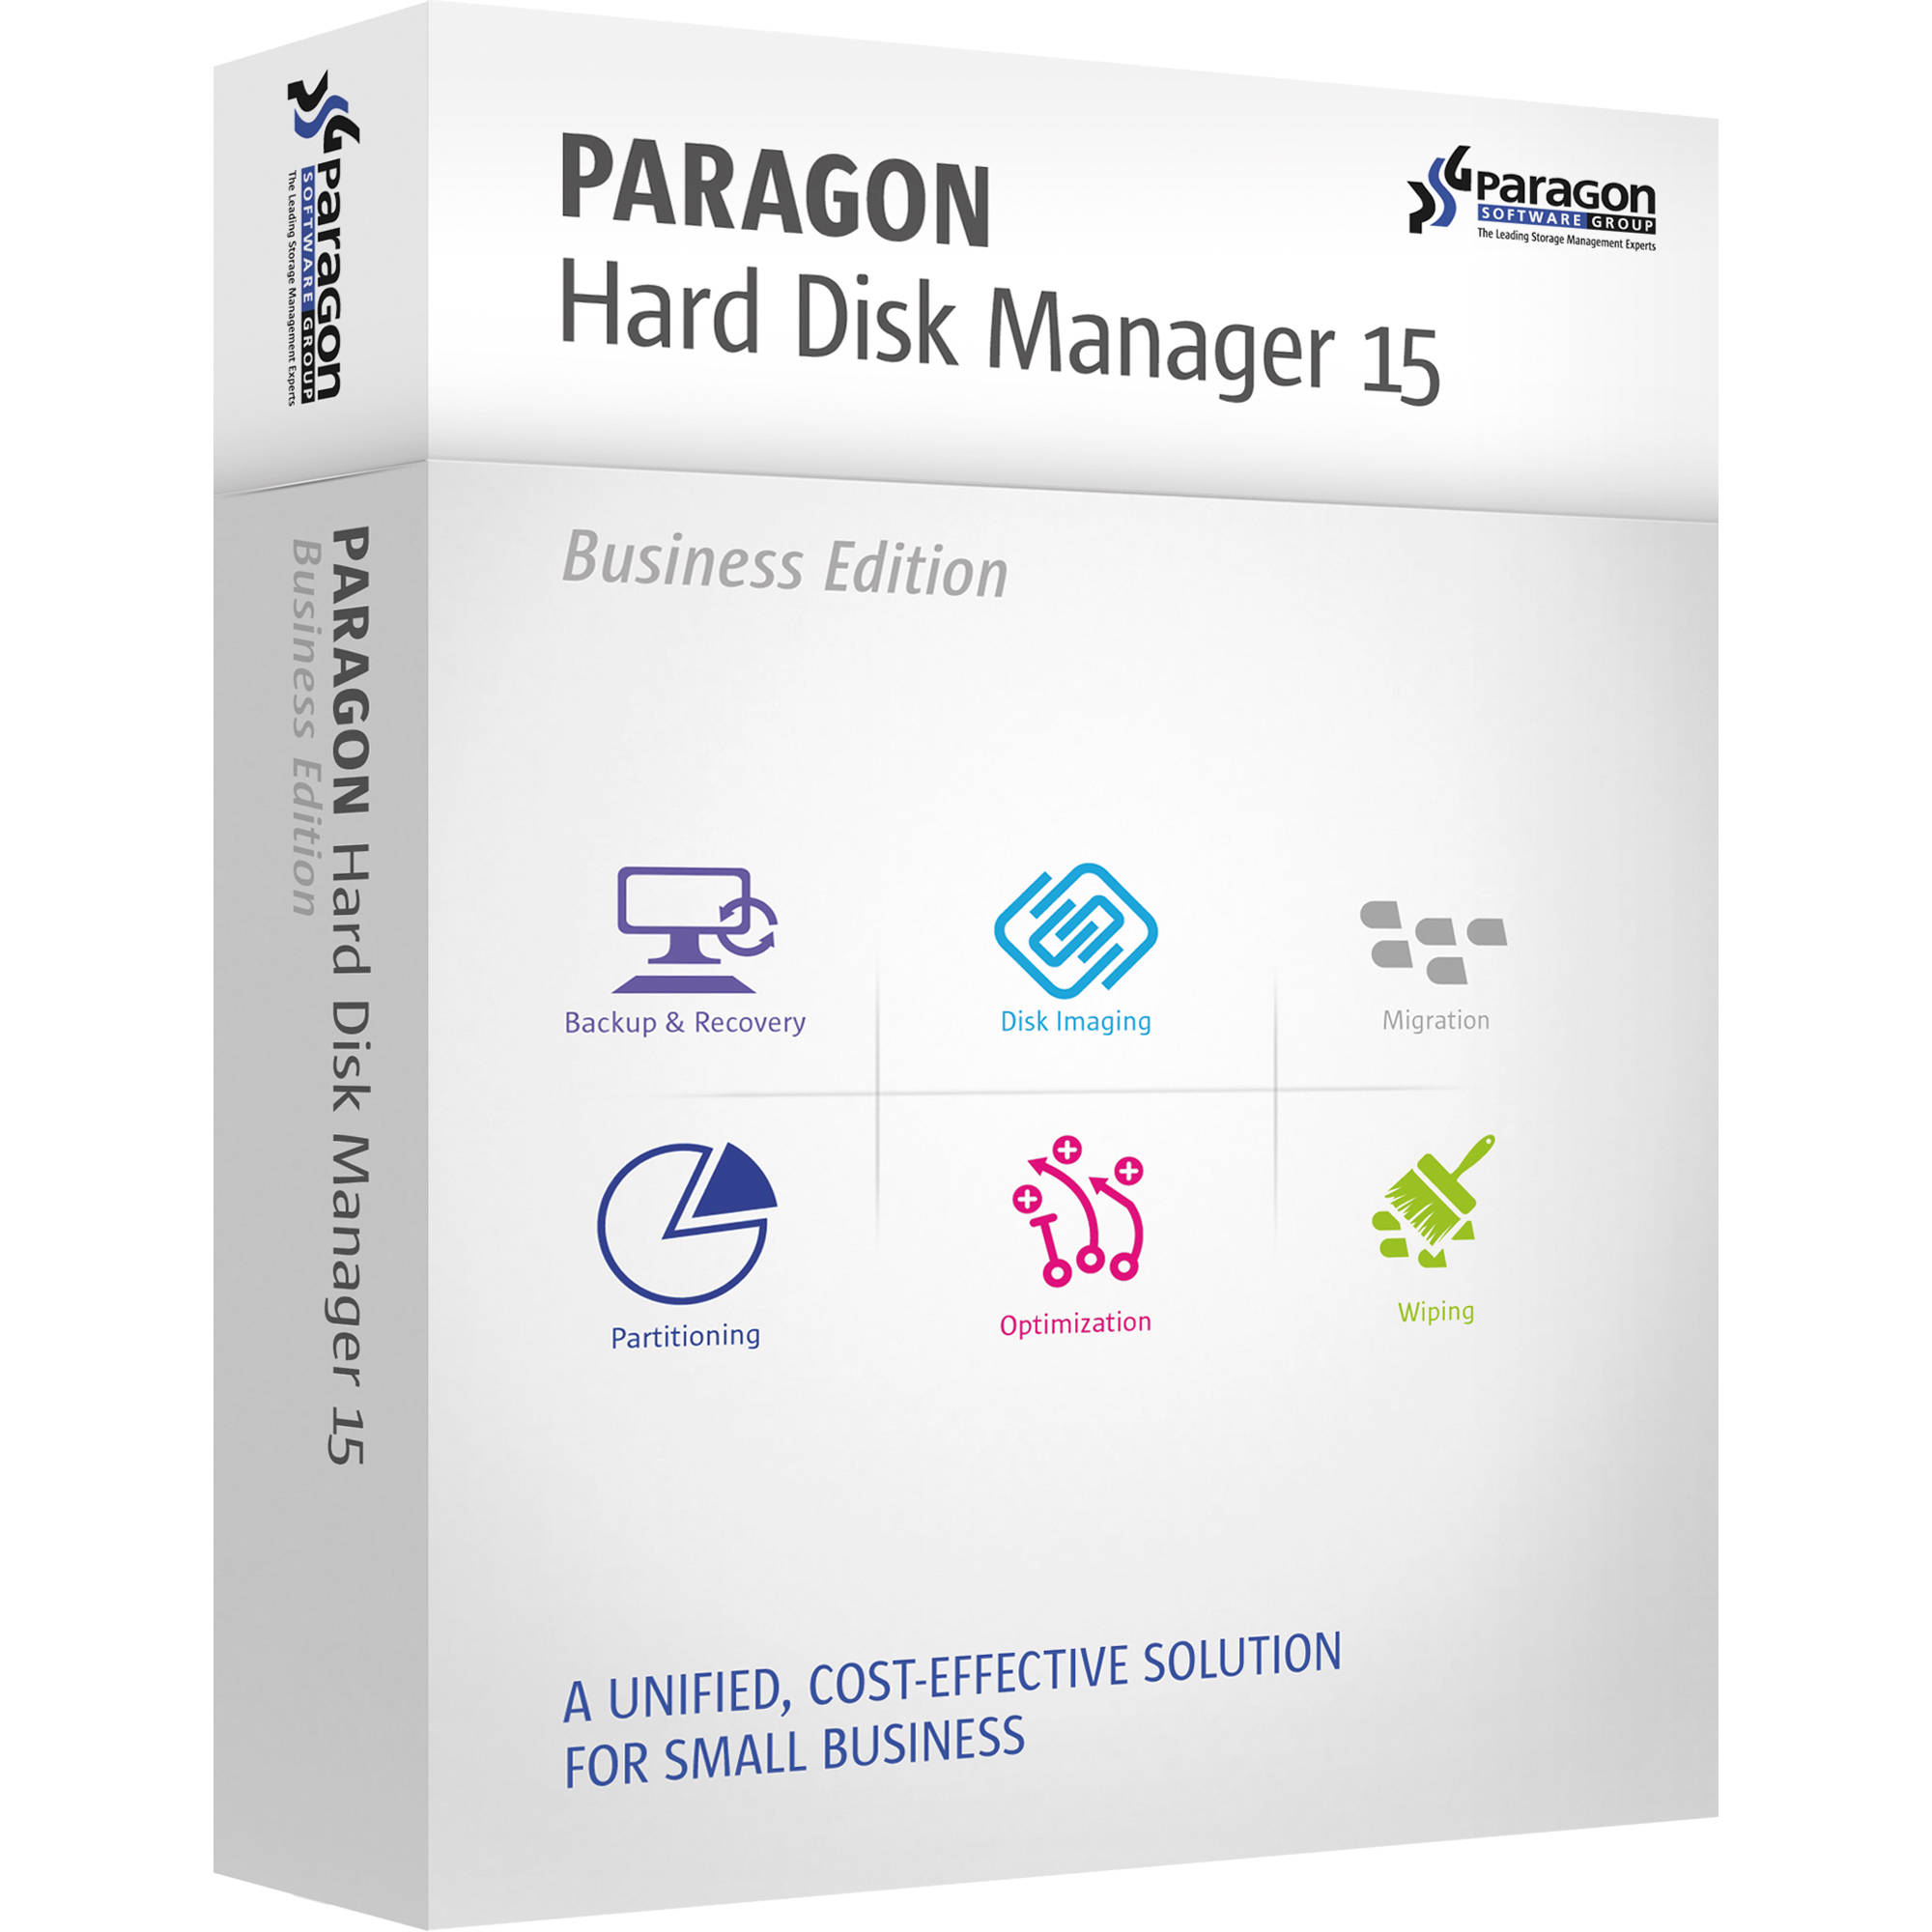 Paragon hard disk manager 15 suite free download downloads.